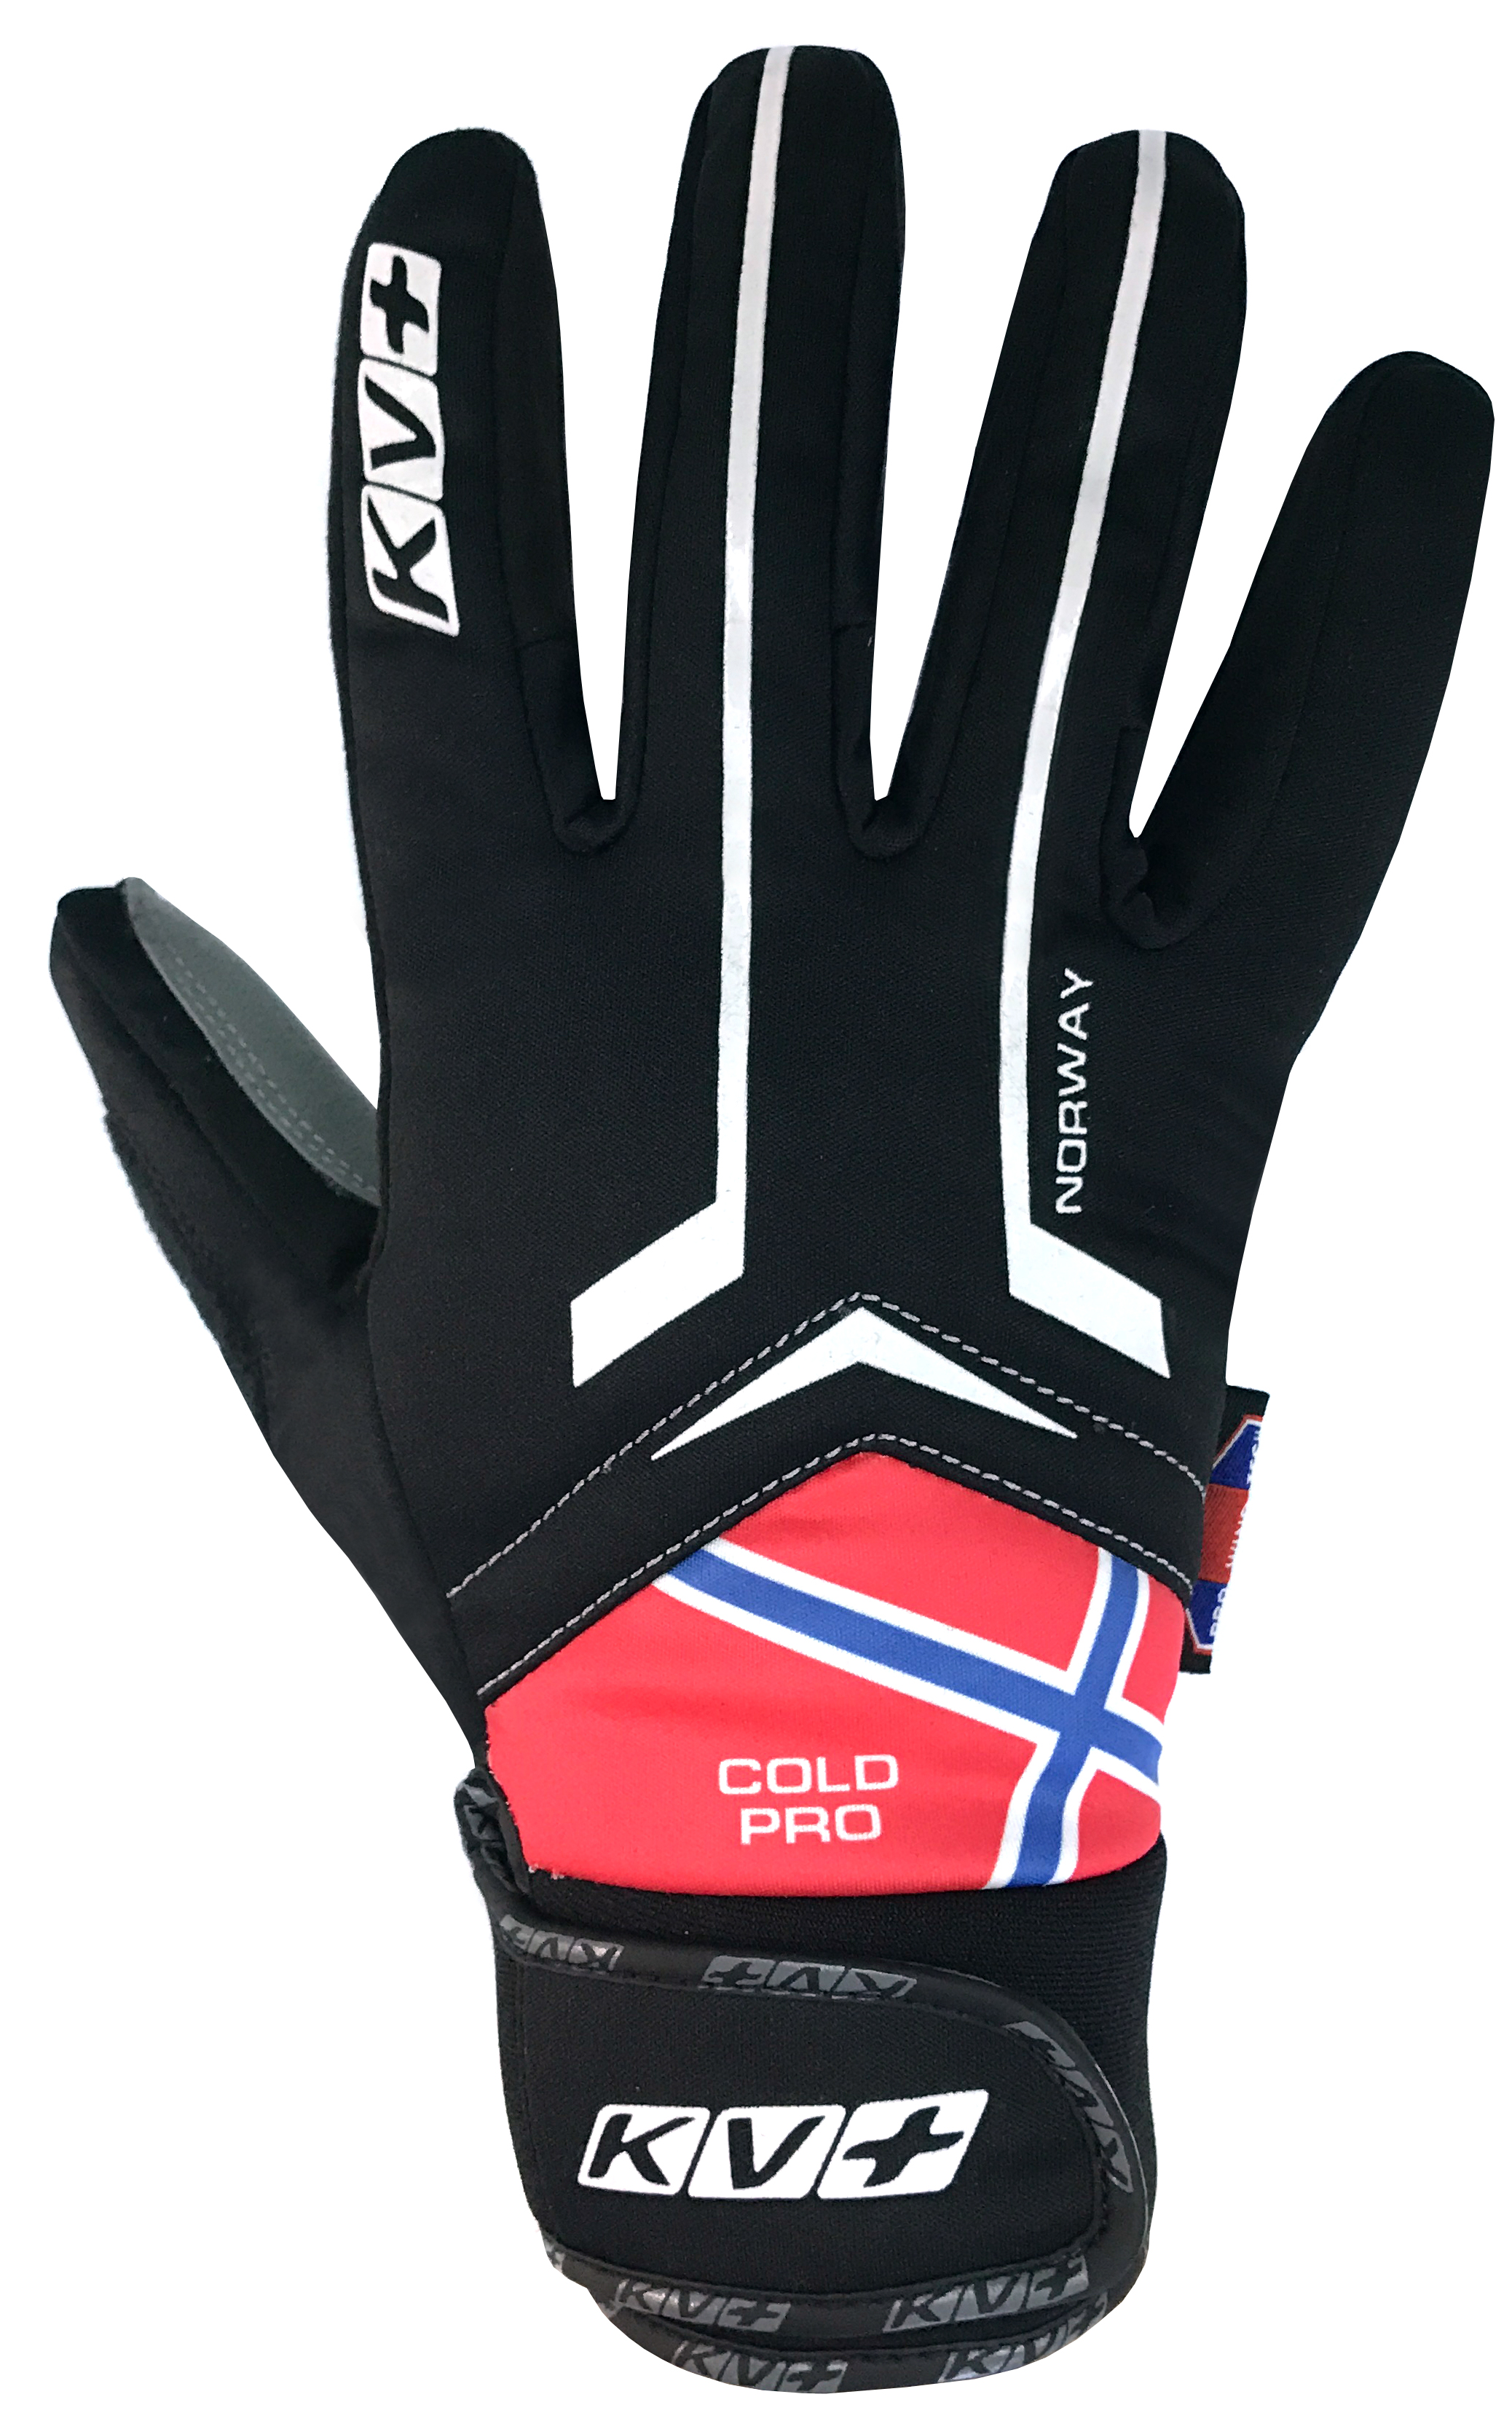 KV+ XC COLD PRO WIND TECH GLOVES NORWAY – black/red 7G05-N